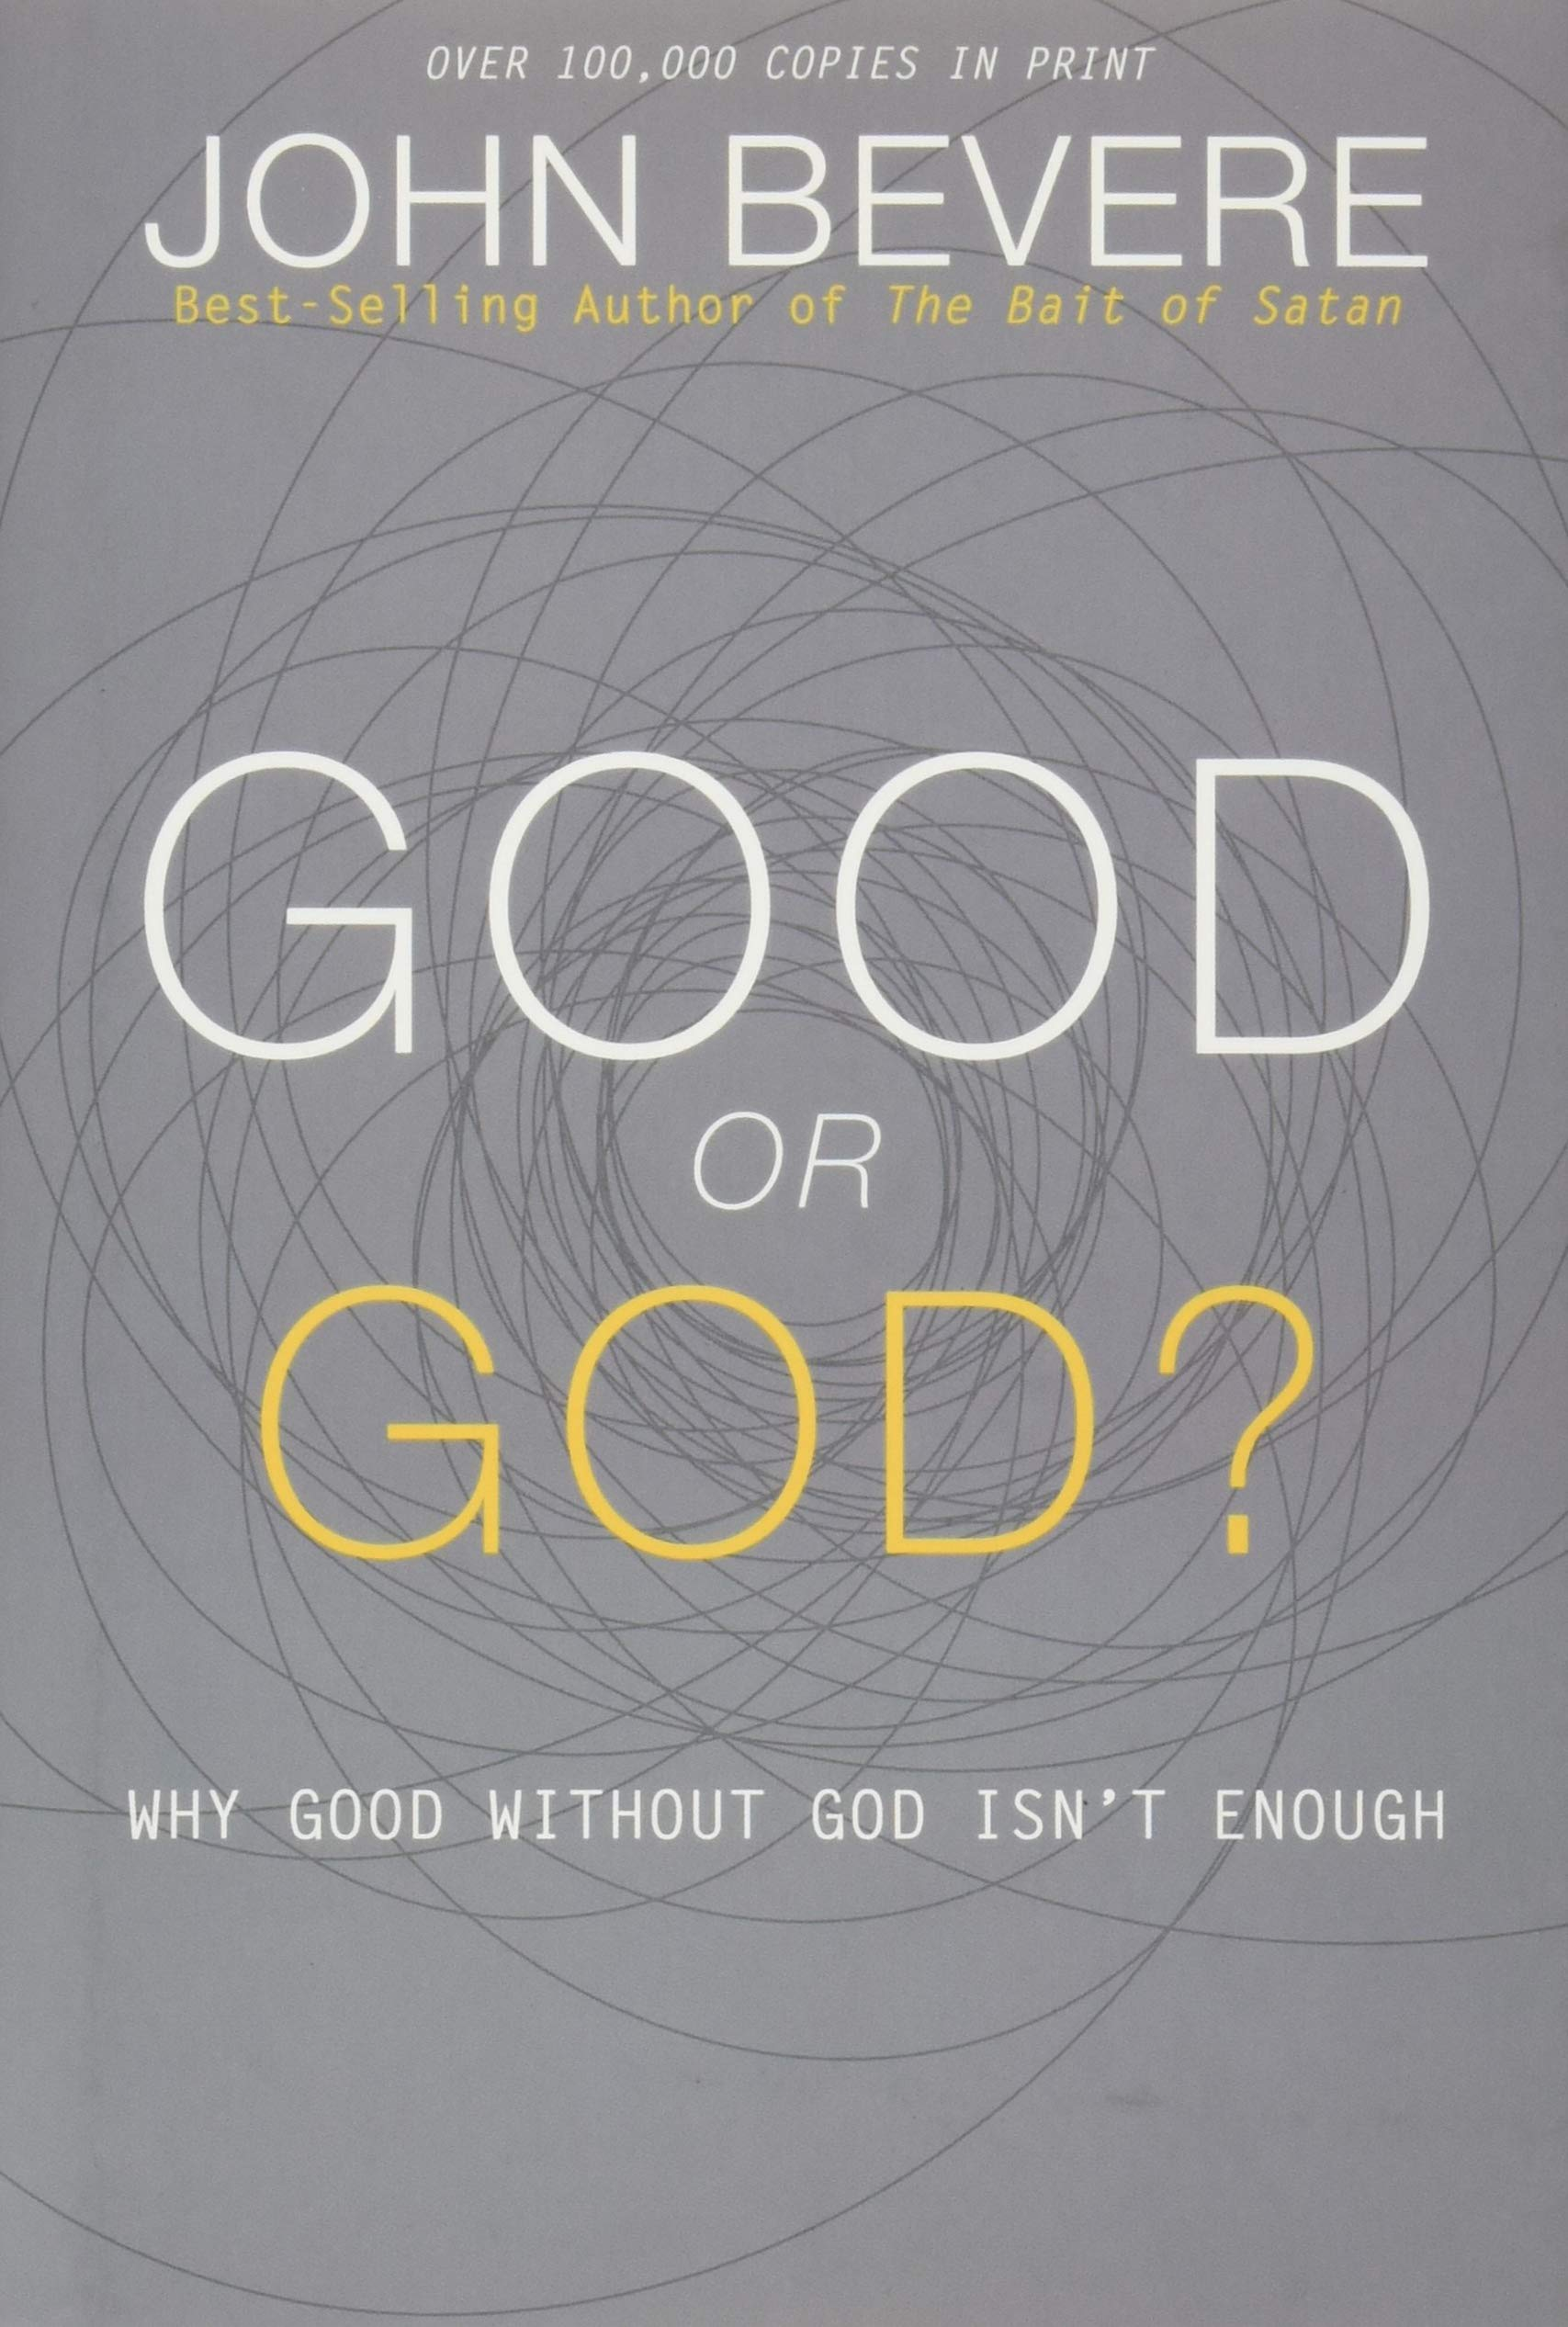 Good or God?: Why Good Without God Isn't Enough: Bevere, John:  9781933185941: Amazon.com: Books